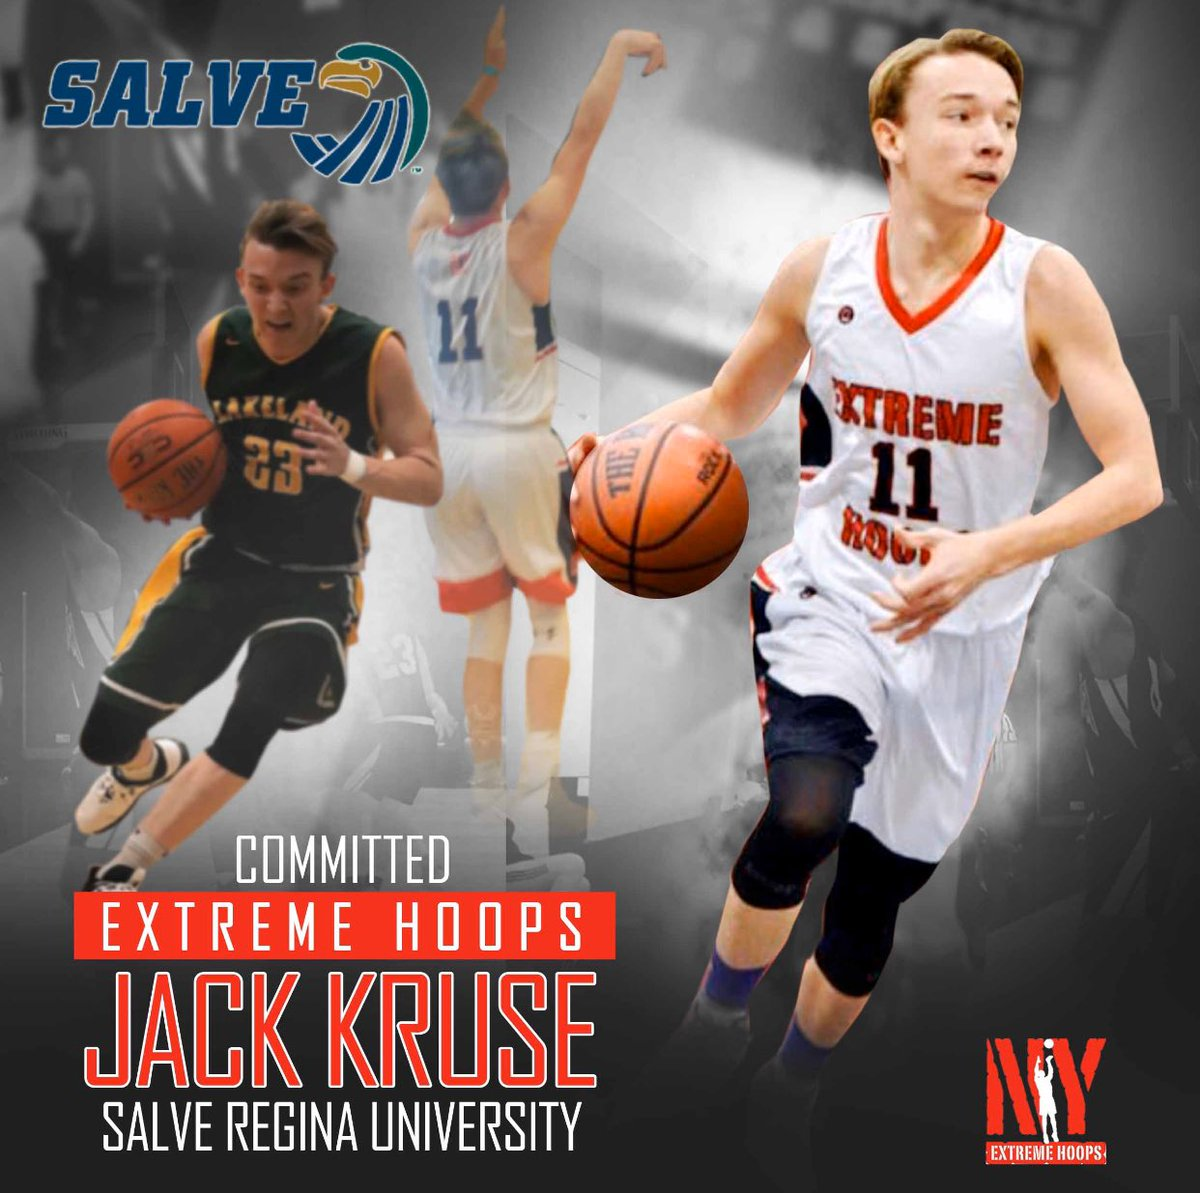 Congrats to Senior Jack kruse who committed to Salve Regina U! All league/All section for Class A lakeland with over 850 points after an injury missing 12 games. He is one of the most skilled kids Ive ever coached(check highlights on insta) & will be & impact player right away! https://t.co/wRZn5CDPzp